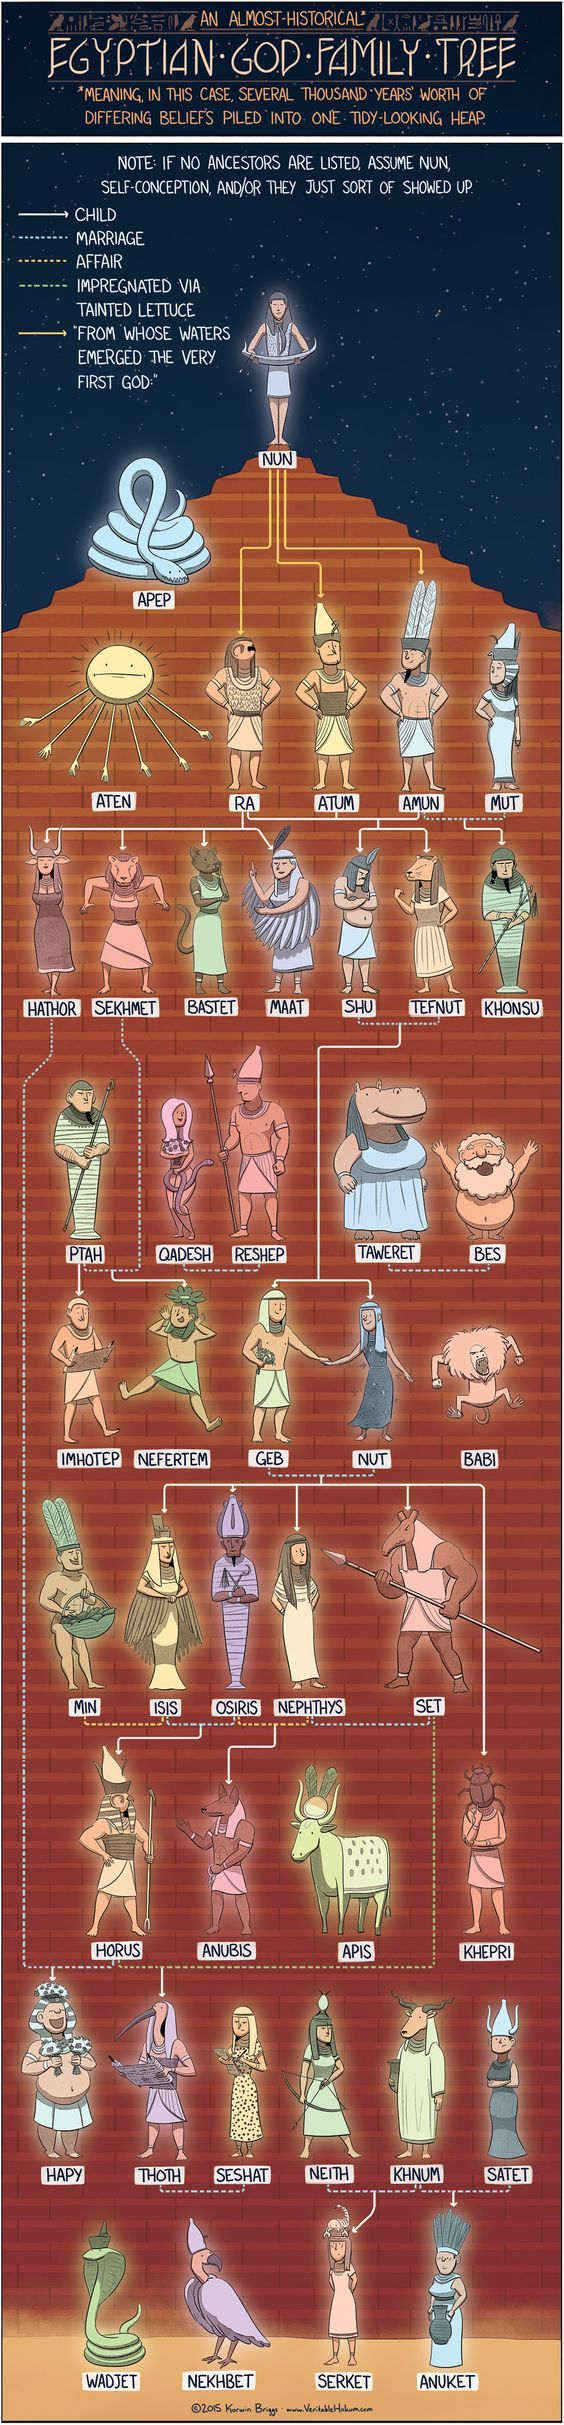 Egyptian God Family Tree